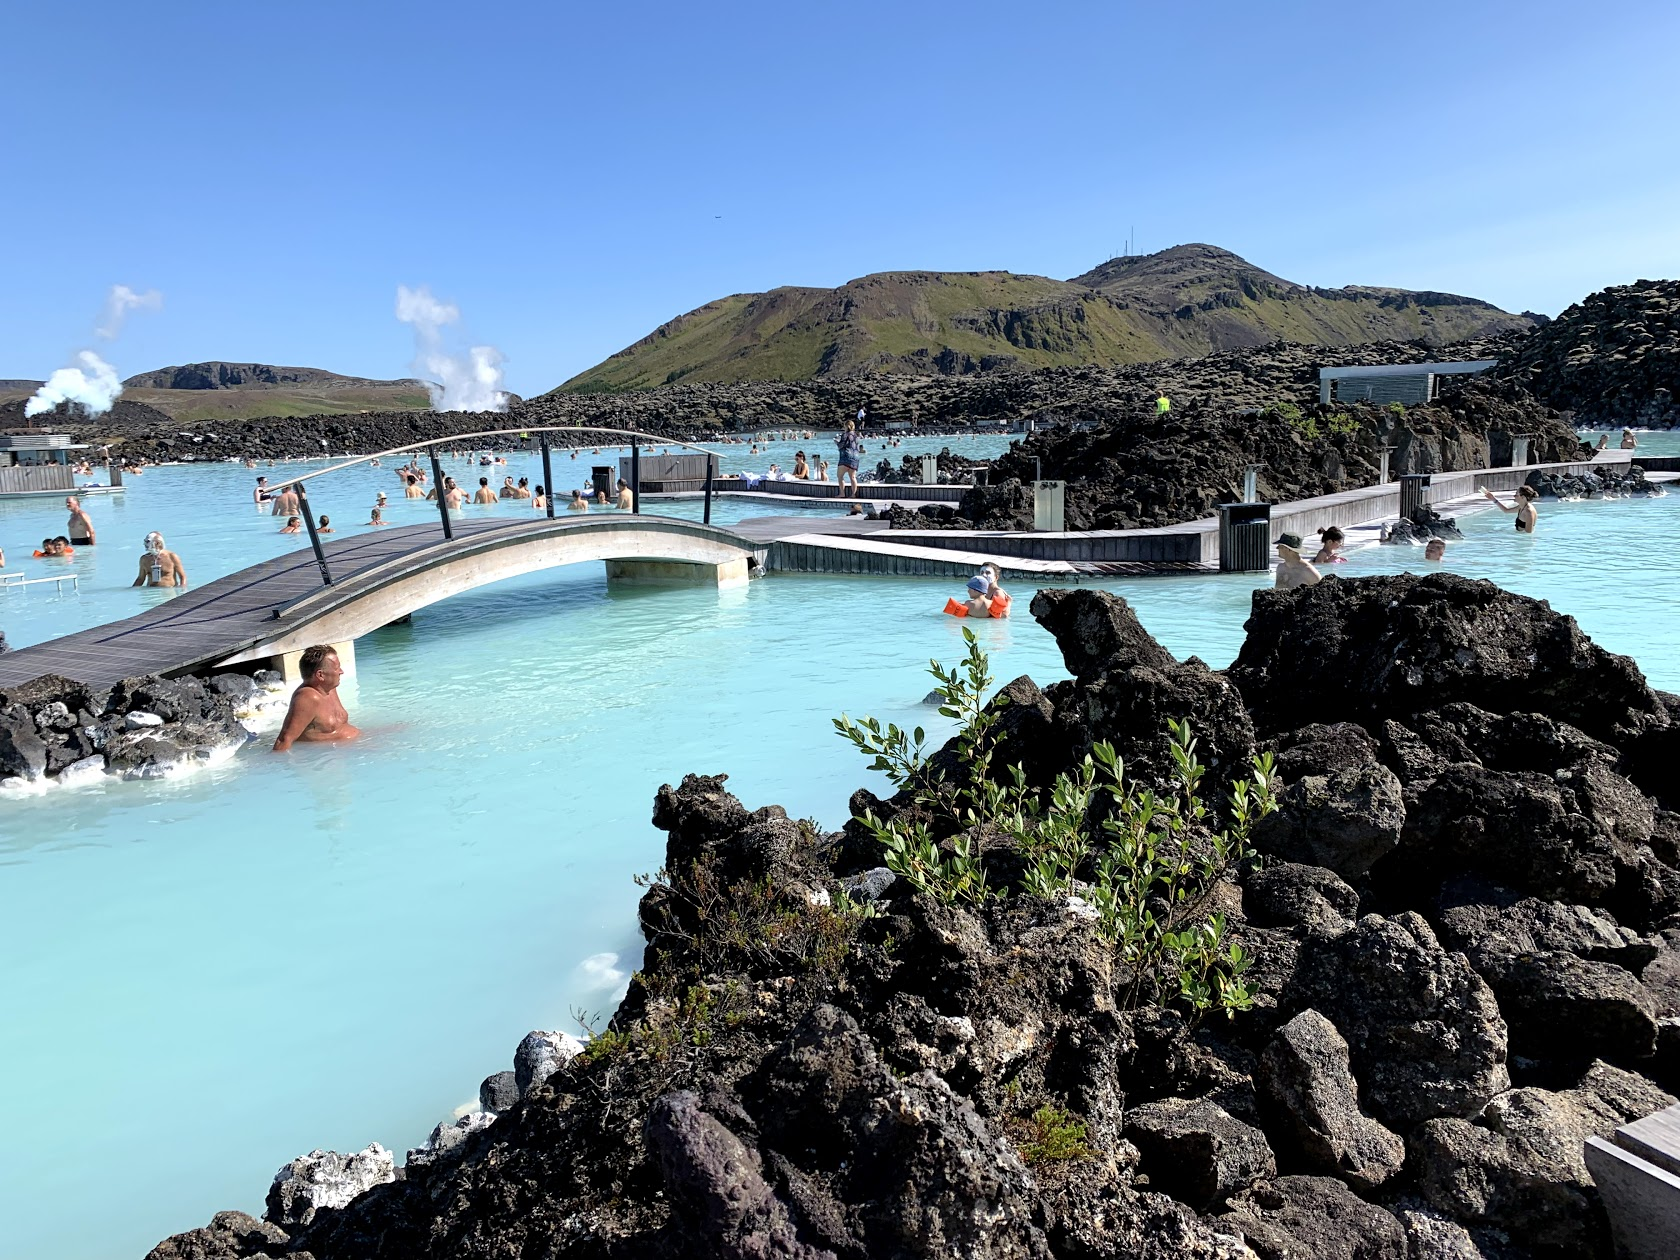 The picturesque side of Iceland's Blue Lagoon